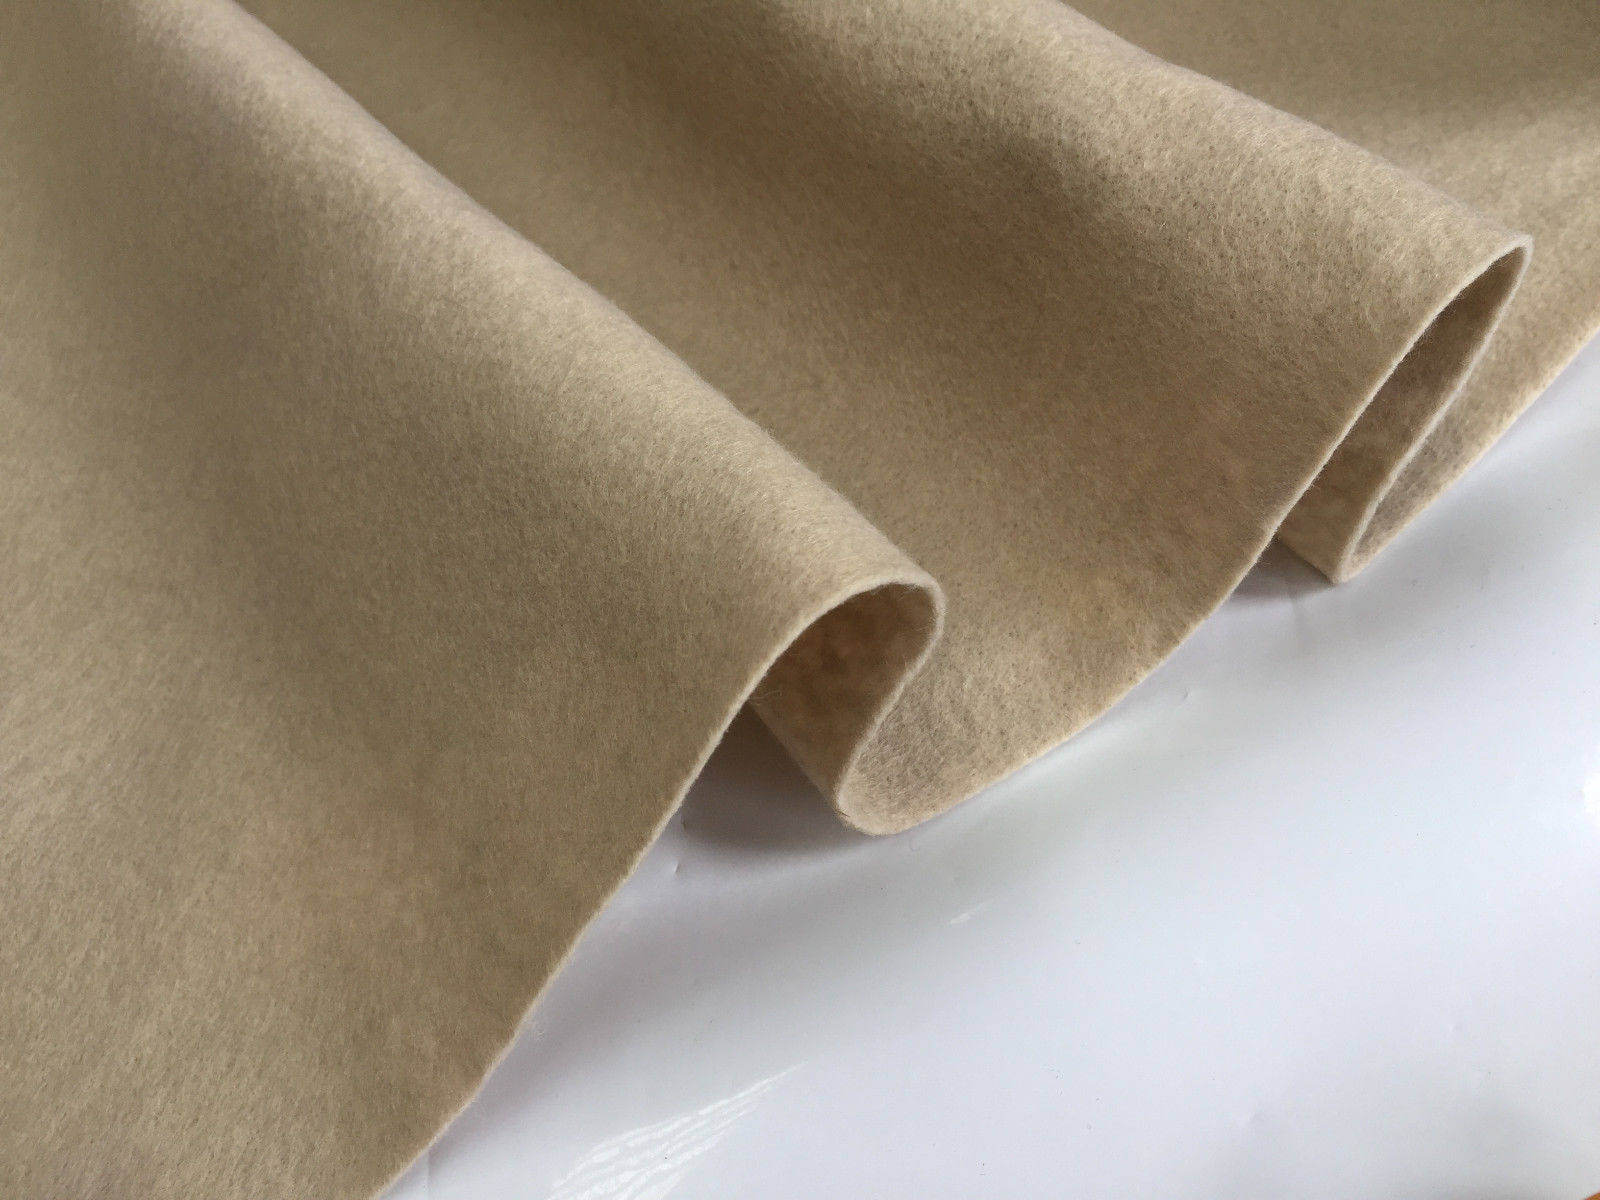 felt-fabric-material-craft-plain-colours-polyester-102cm-wide-nude-5ace64681.jpg